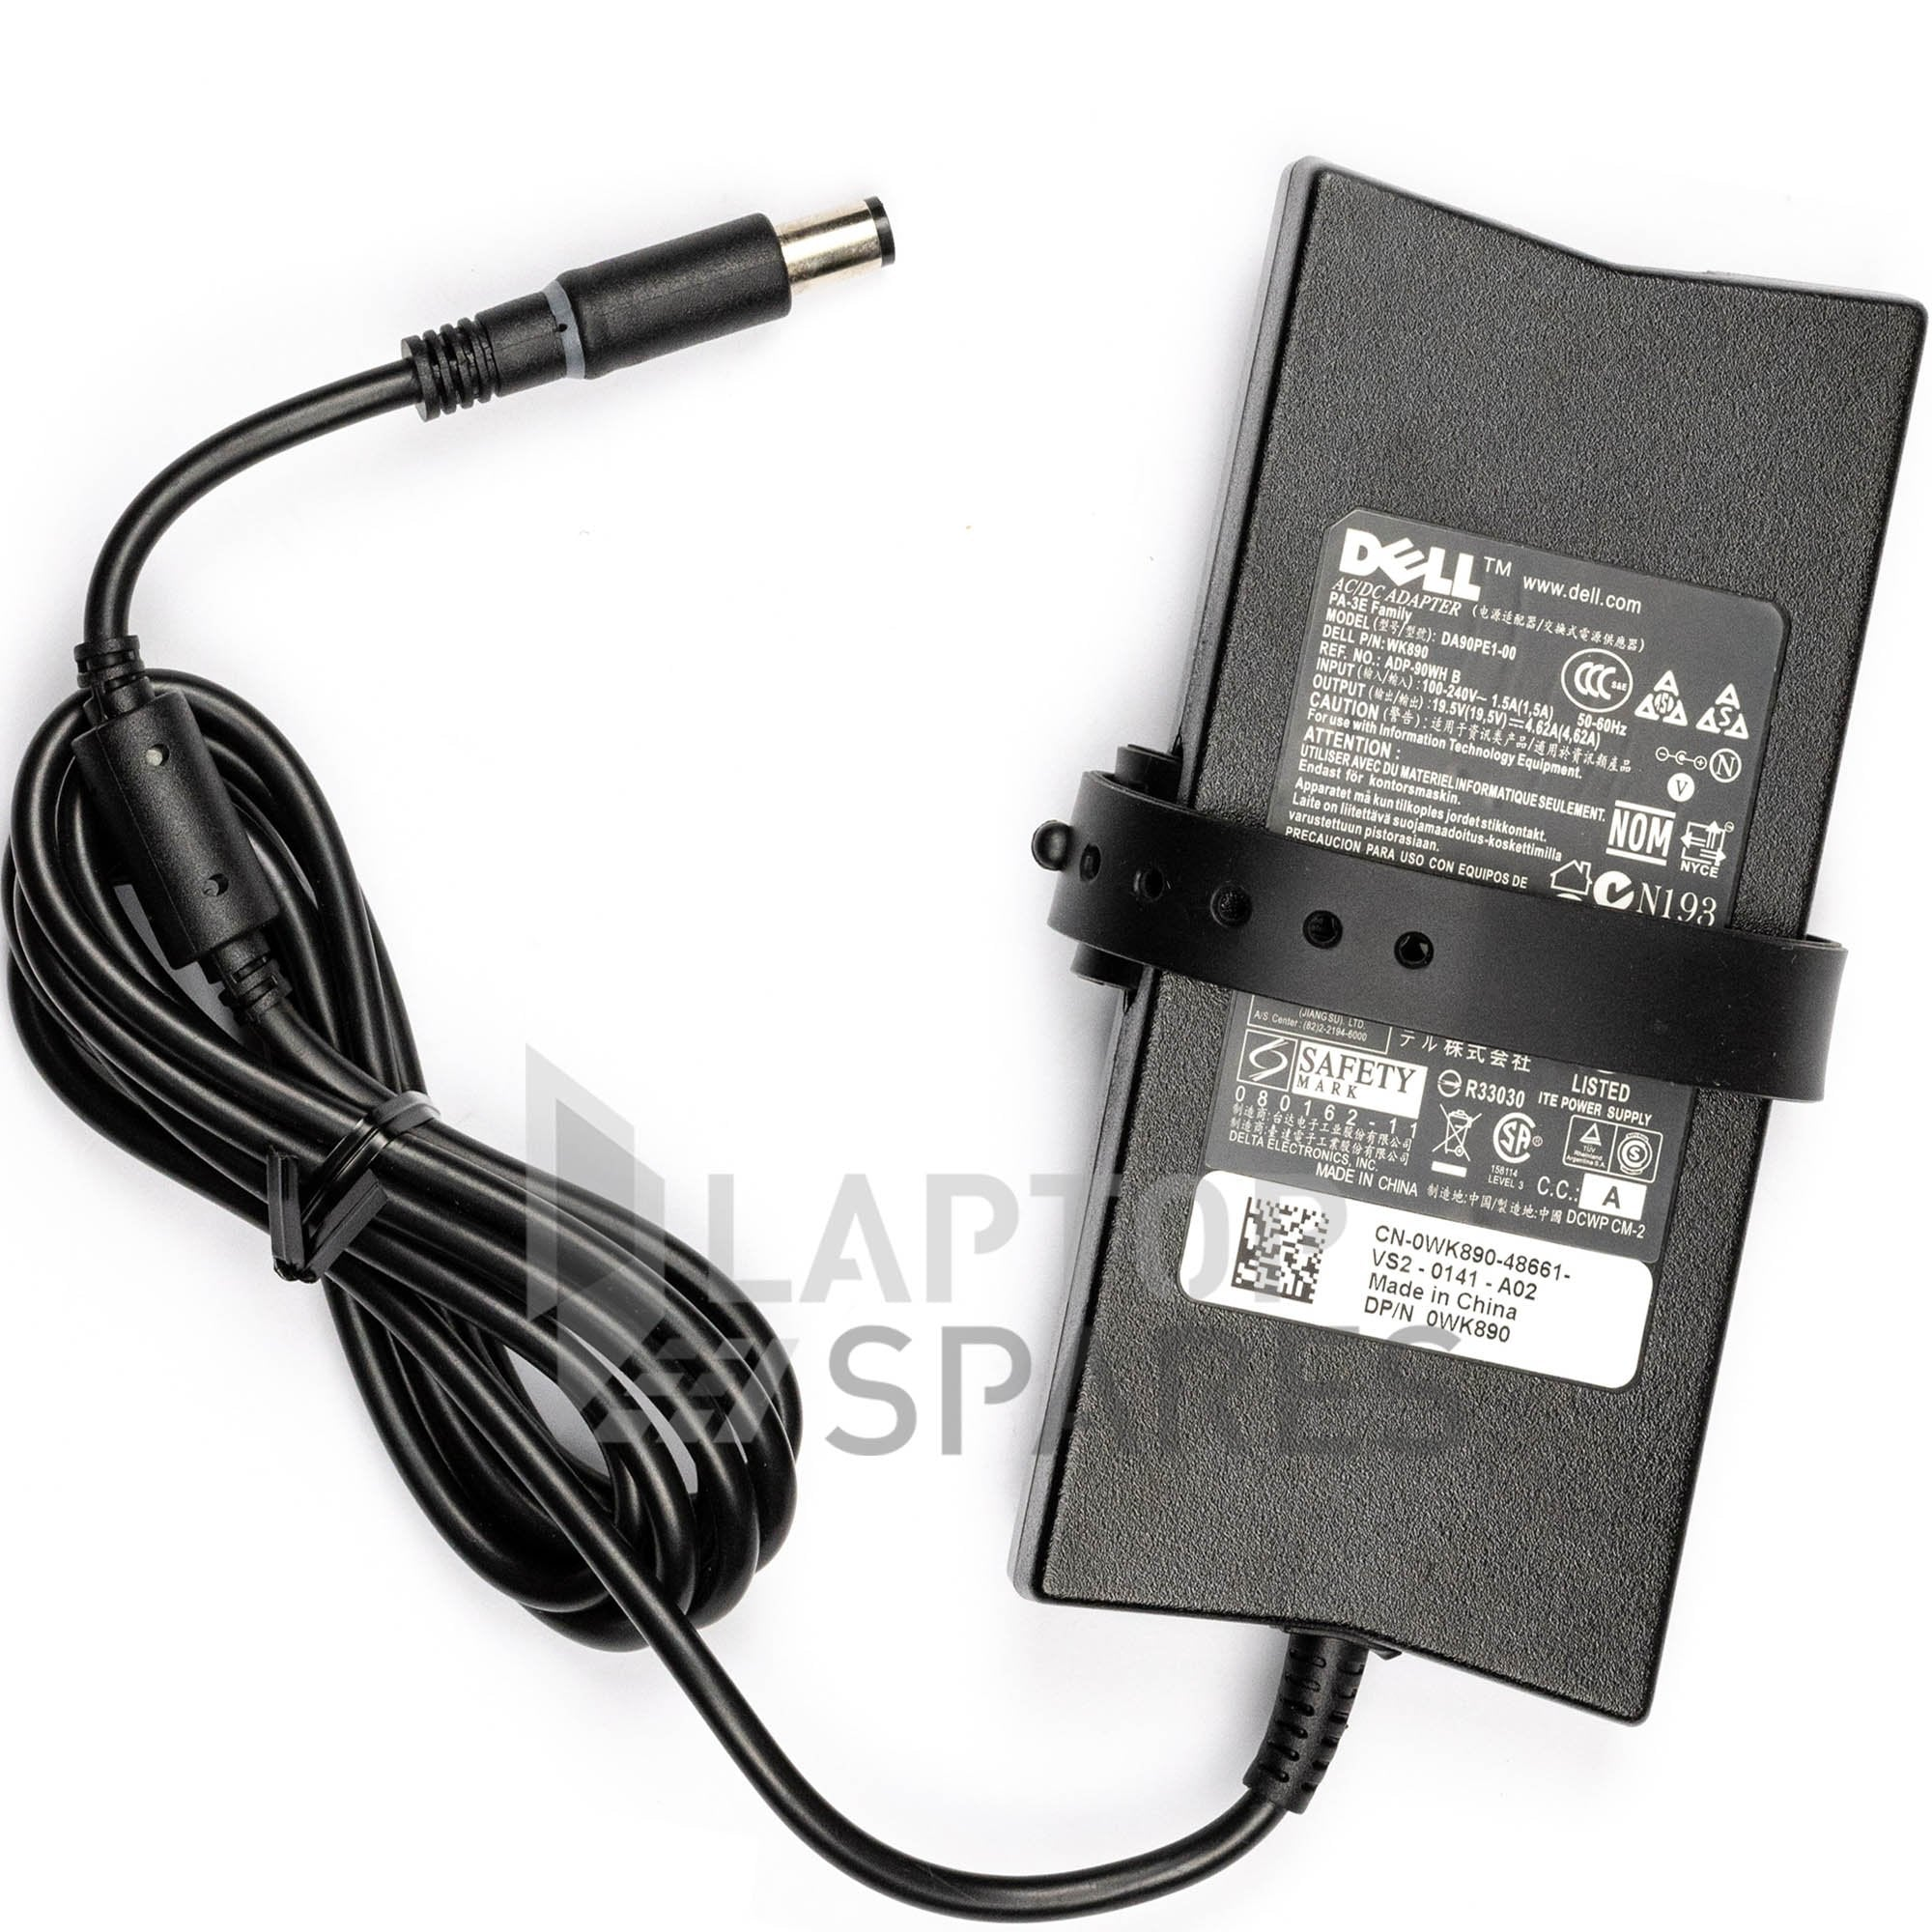 Dell Inspiron N7010 N7110 Laptop Slim AC Adapter Charger